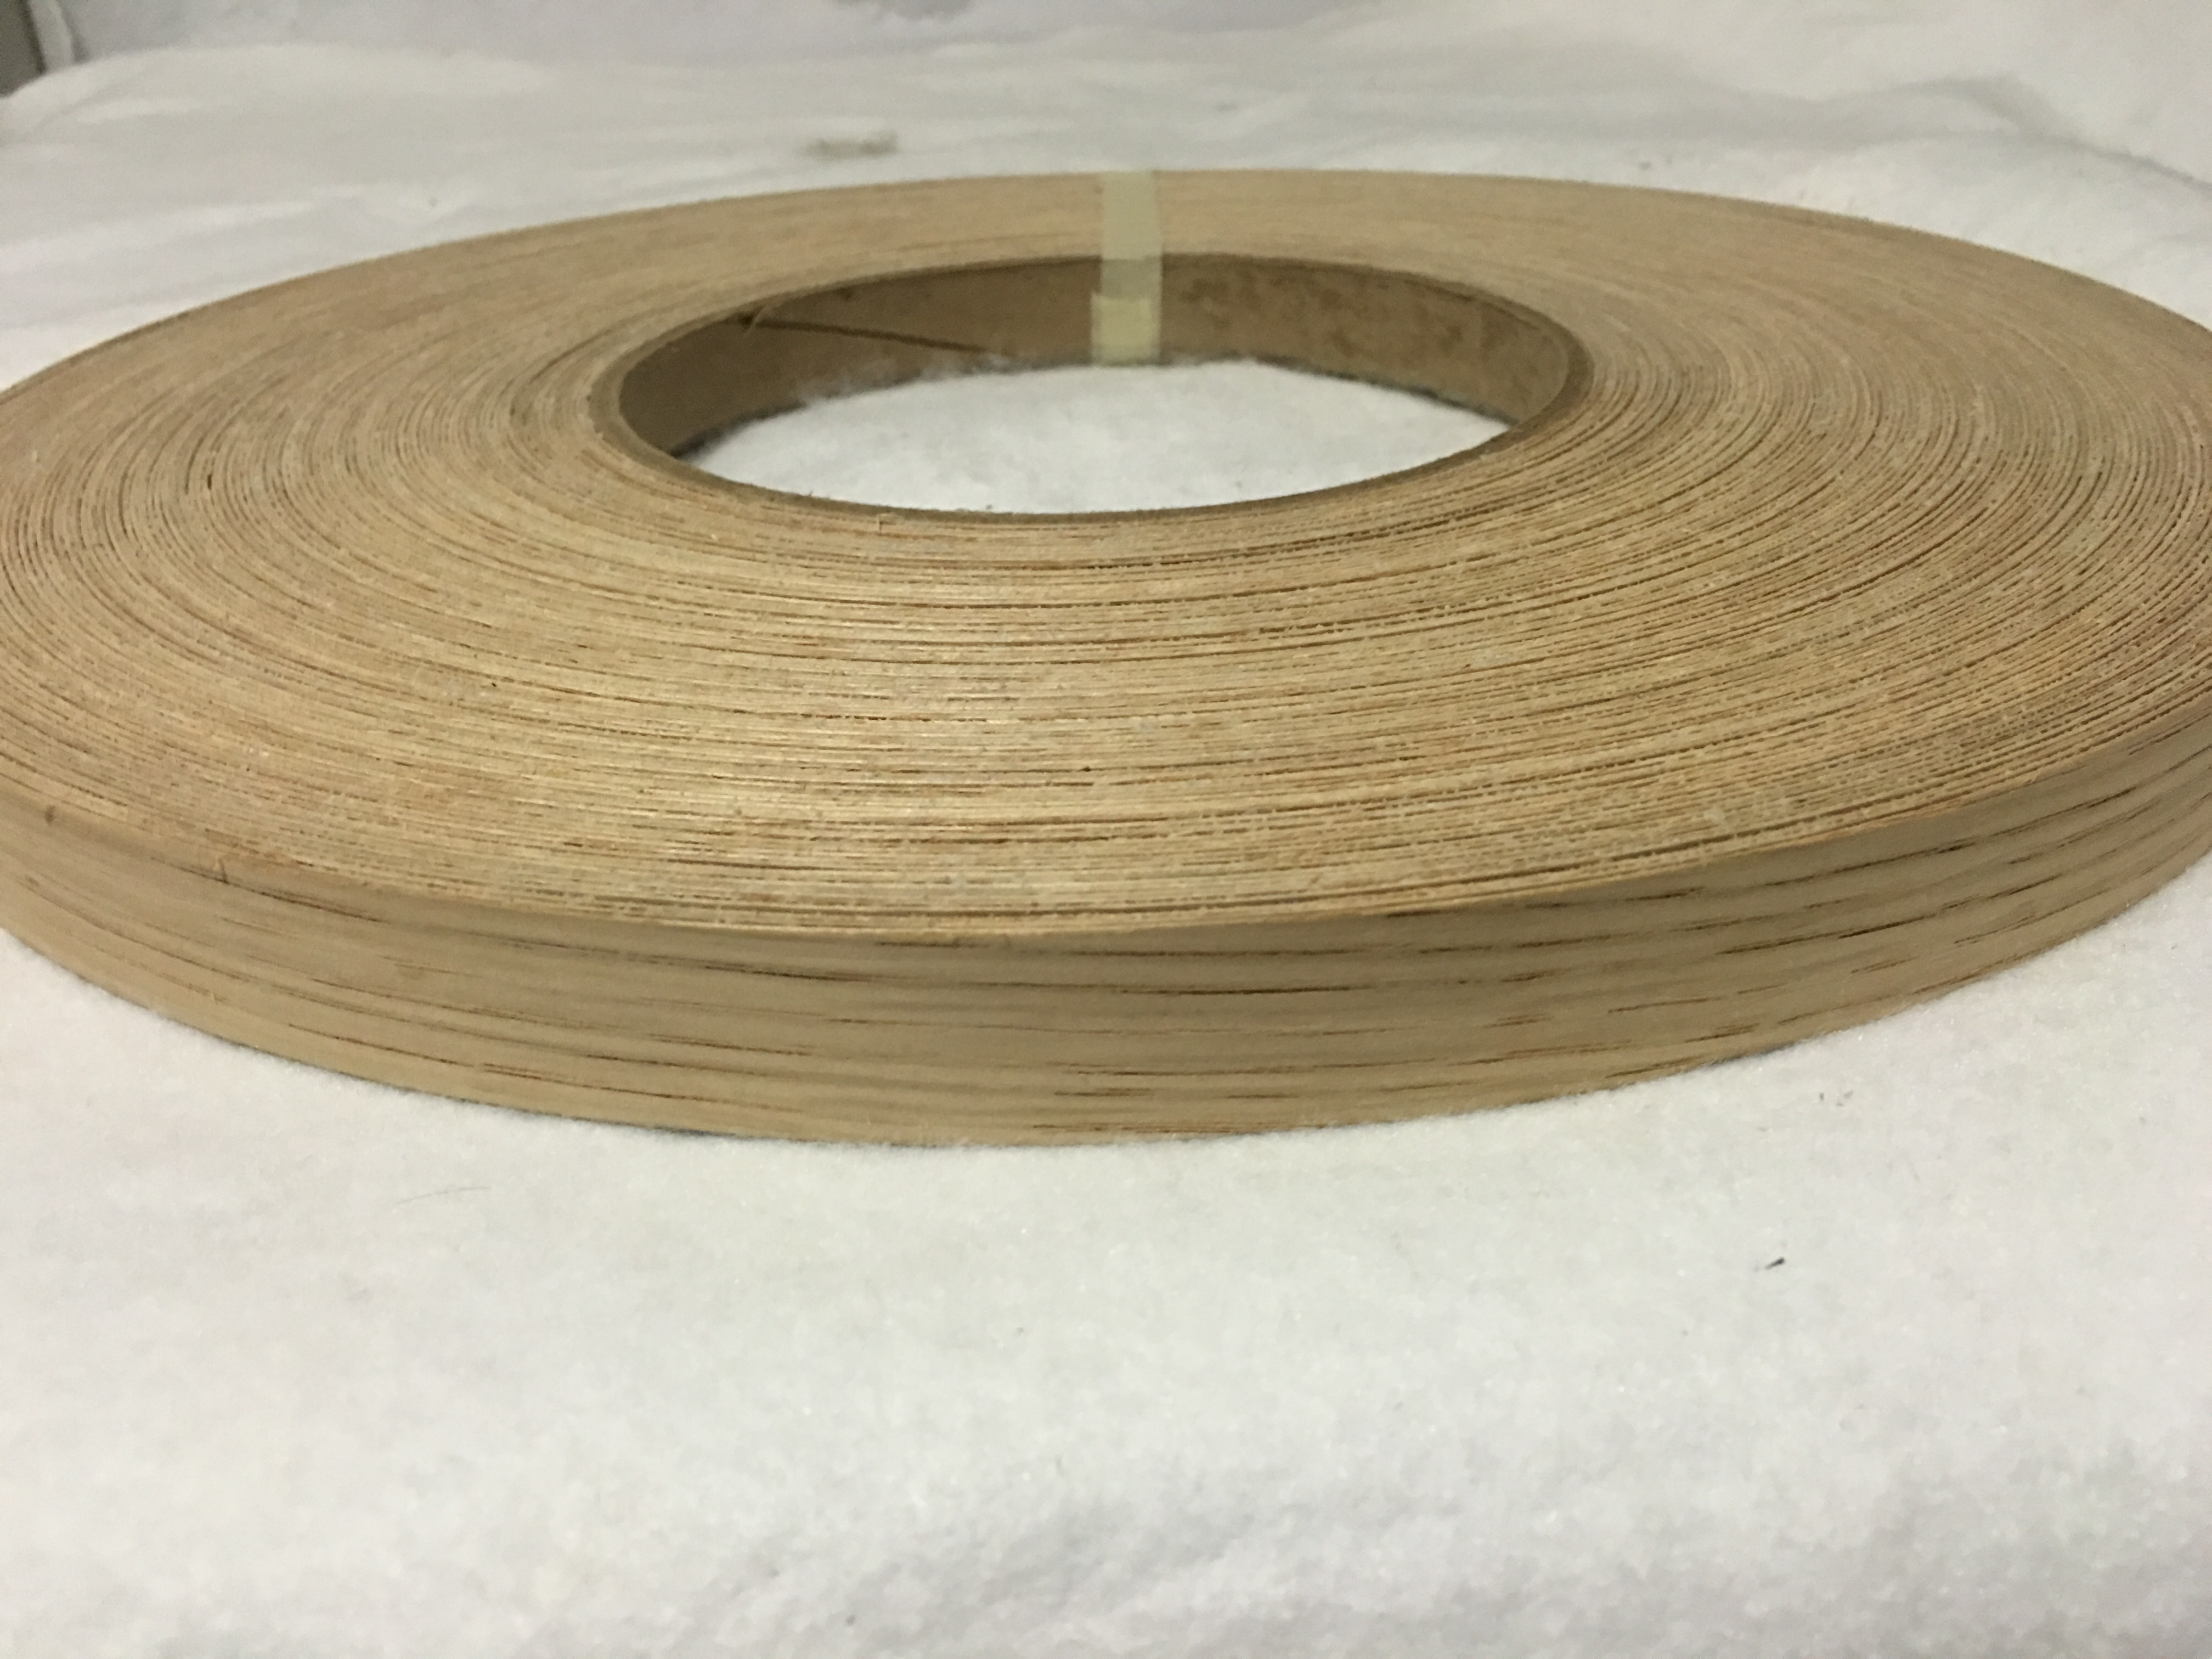 White Oak Pre Glued 5 8 To 3 X250 Wood Veneer Edge Banding Sold By Chiquinelly Edgebanding